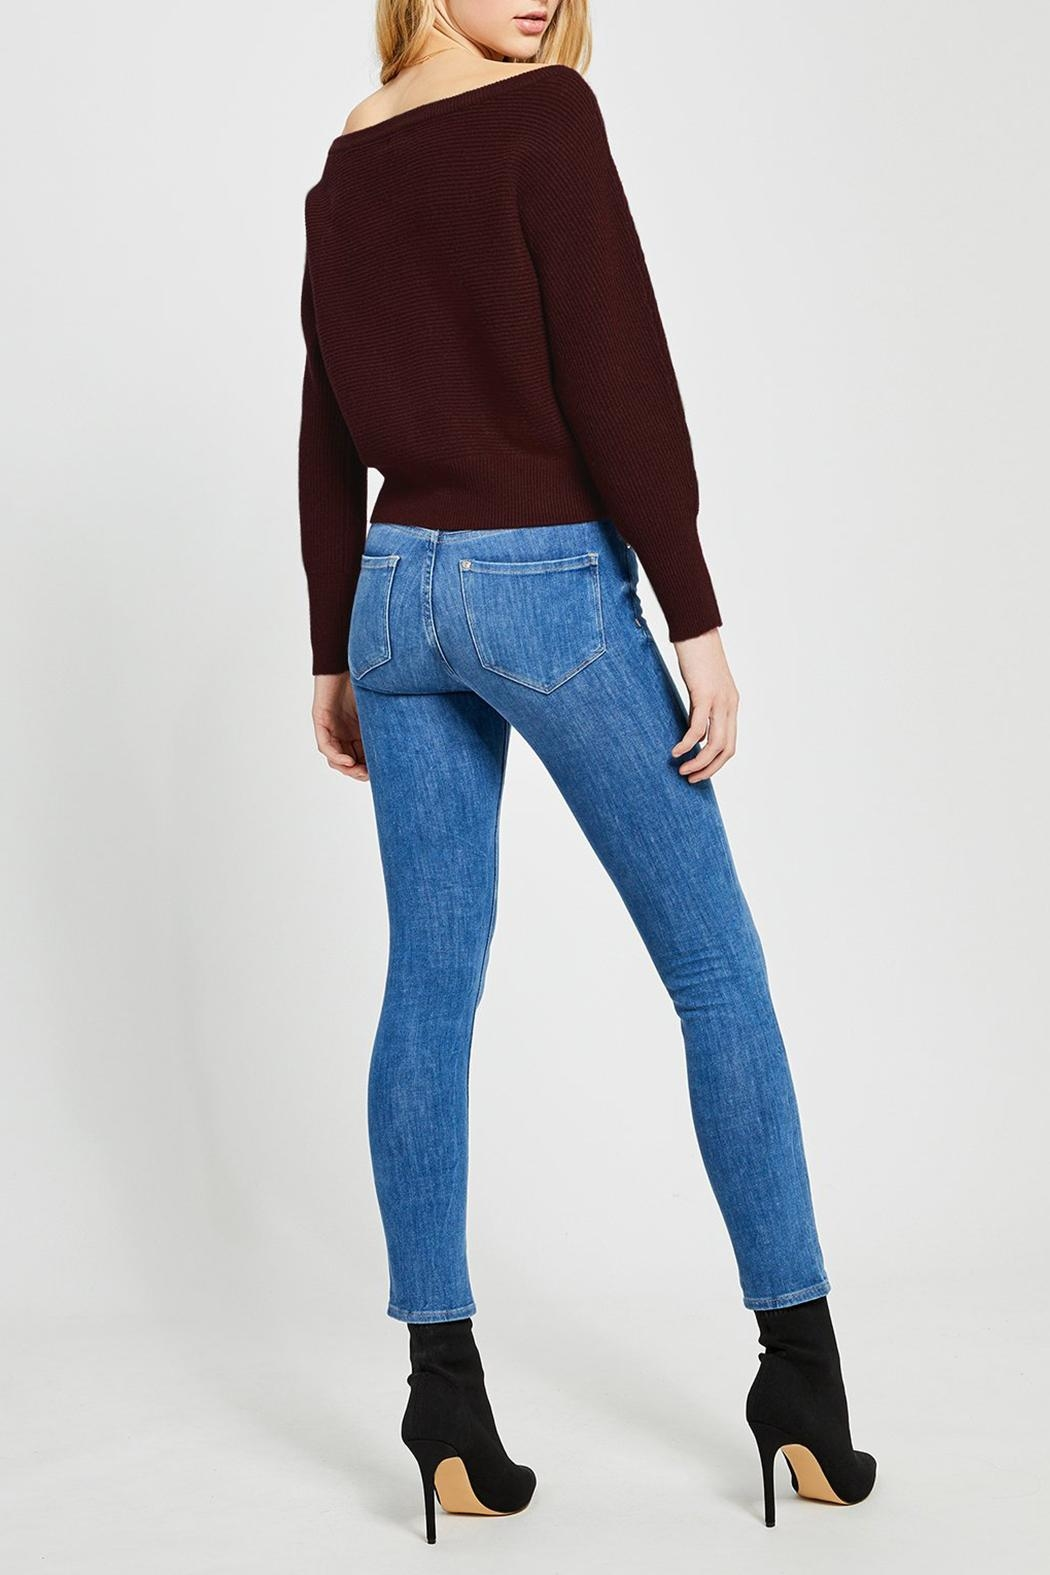 Gentle Fawn Camillo Pullover - Side Cropped Image